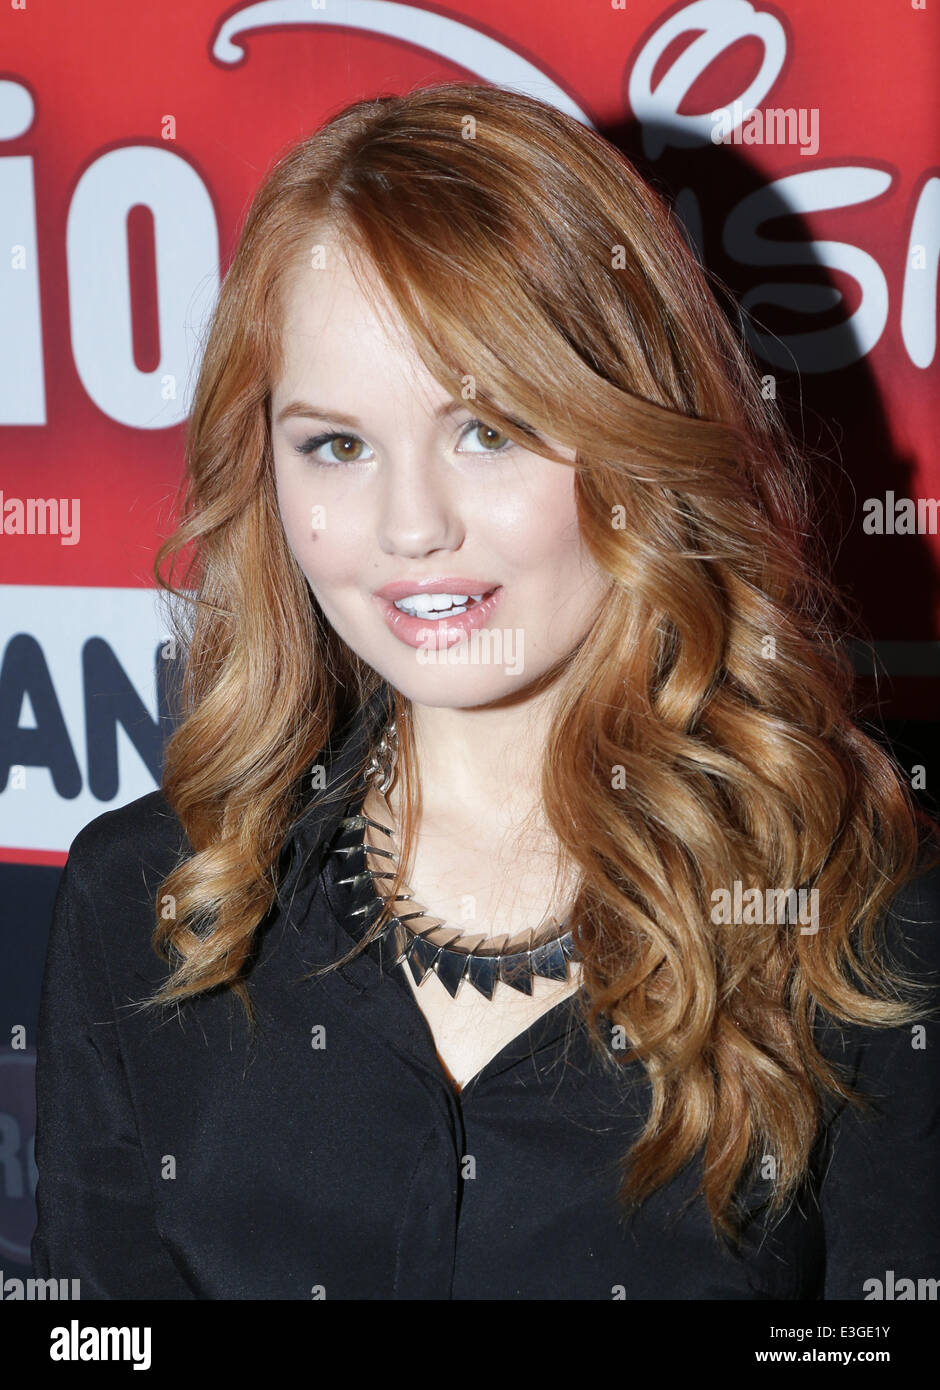 Debby ryan special appearancemeet and greet at the glendale debby ryan special appearancemeet and greet at the glendale galleria featuring debby ryan where glendale california united states when 09 nov 2013 m4hsunfo